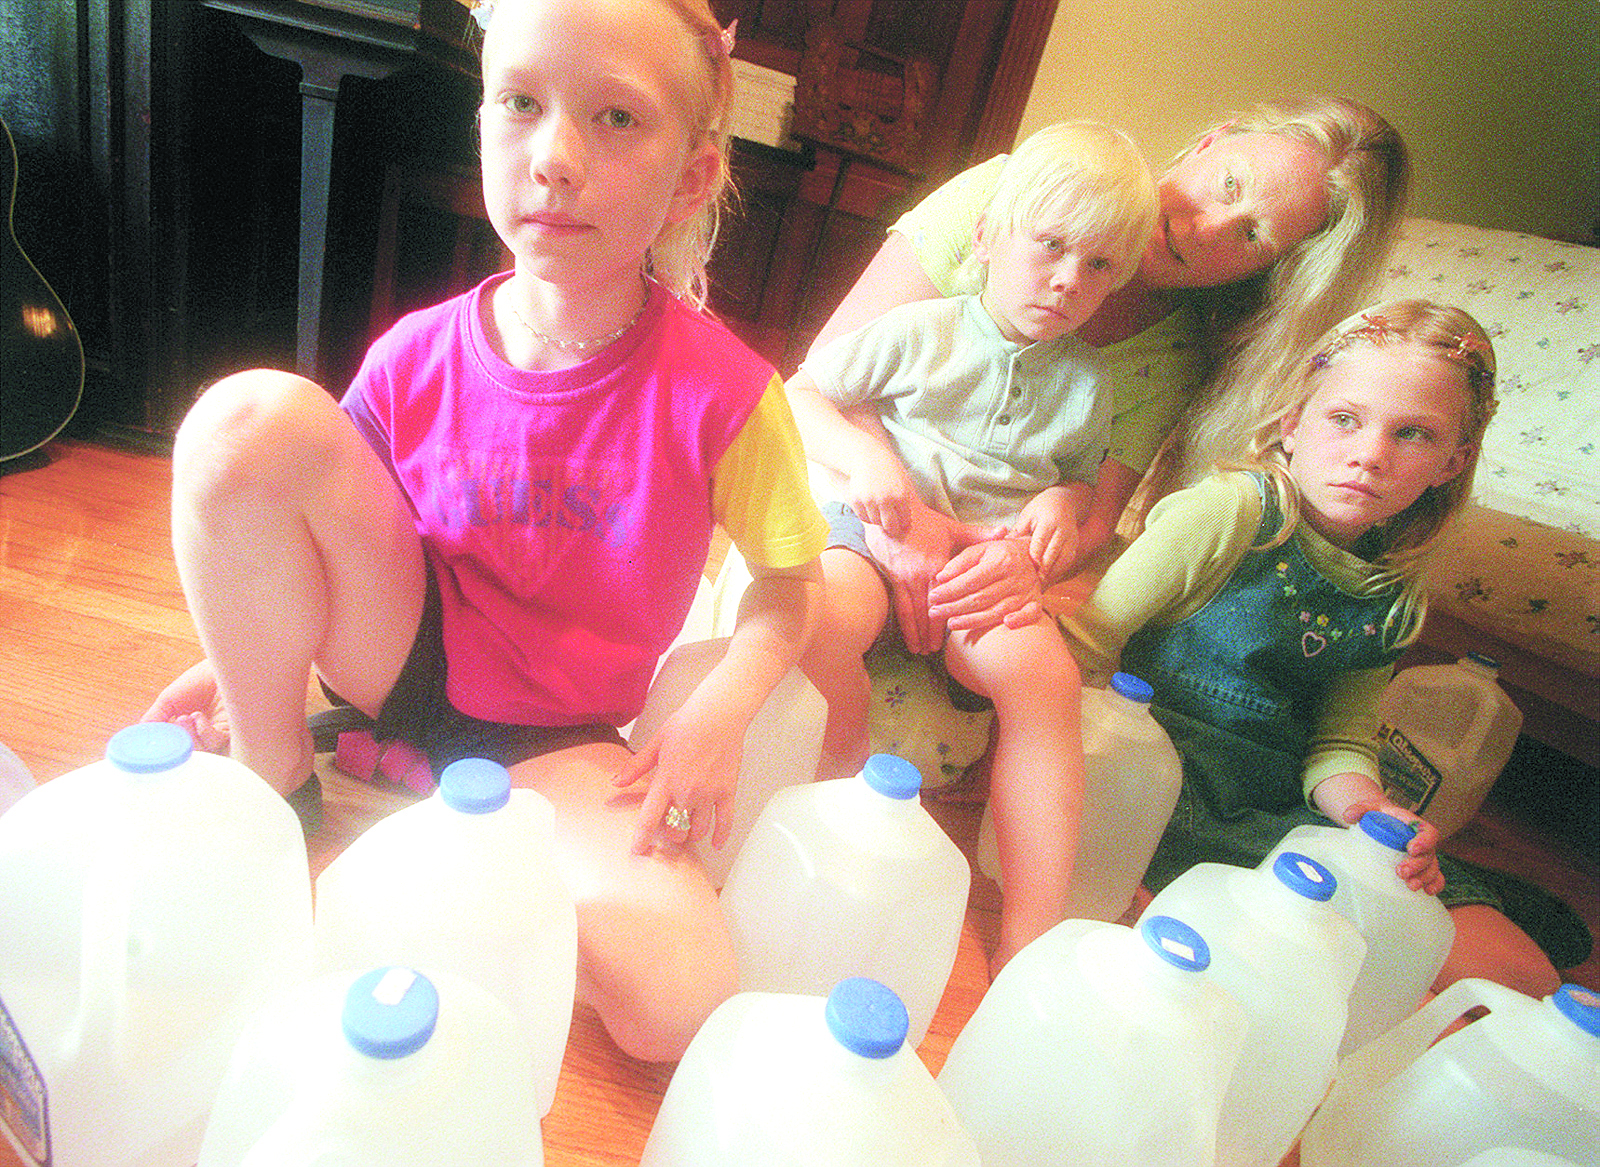 Corine Hillebrand with her children, June 2000 image